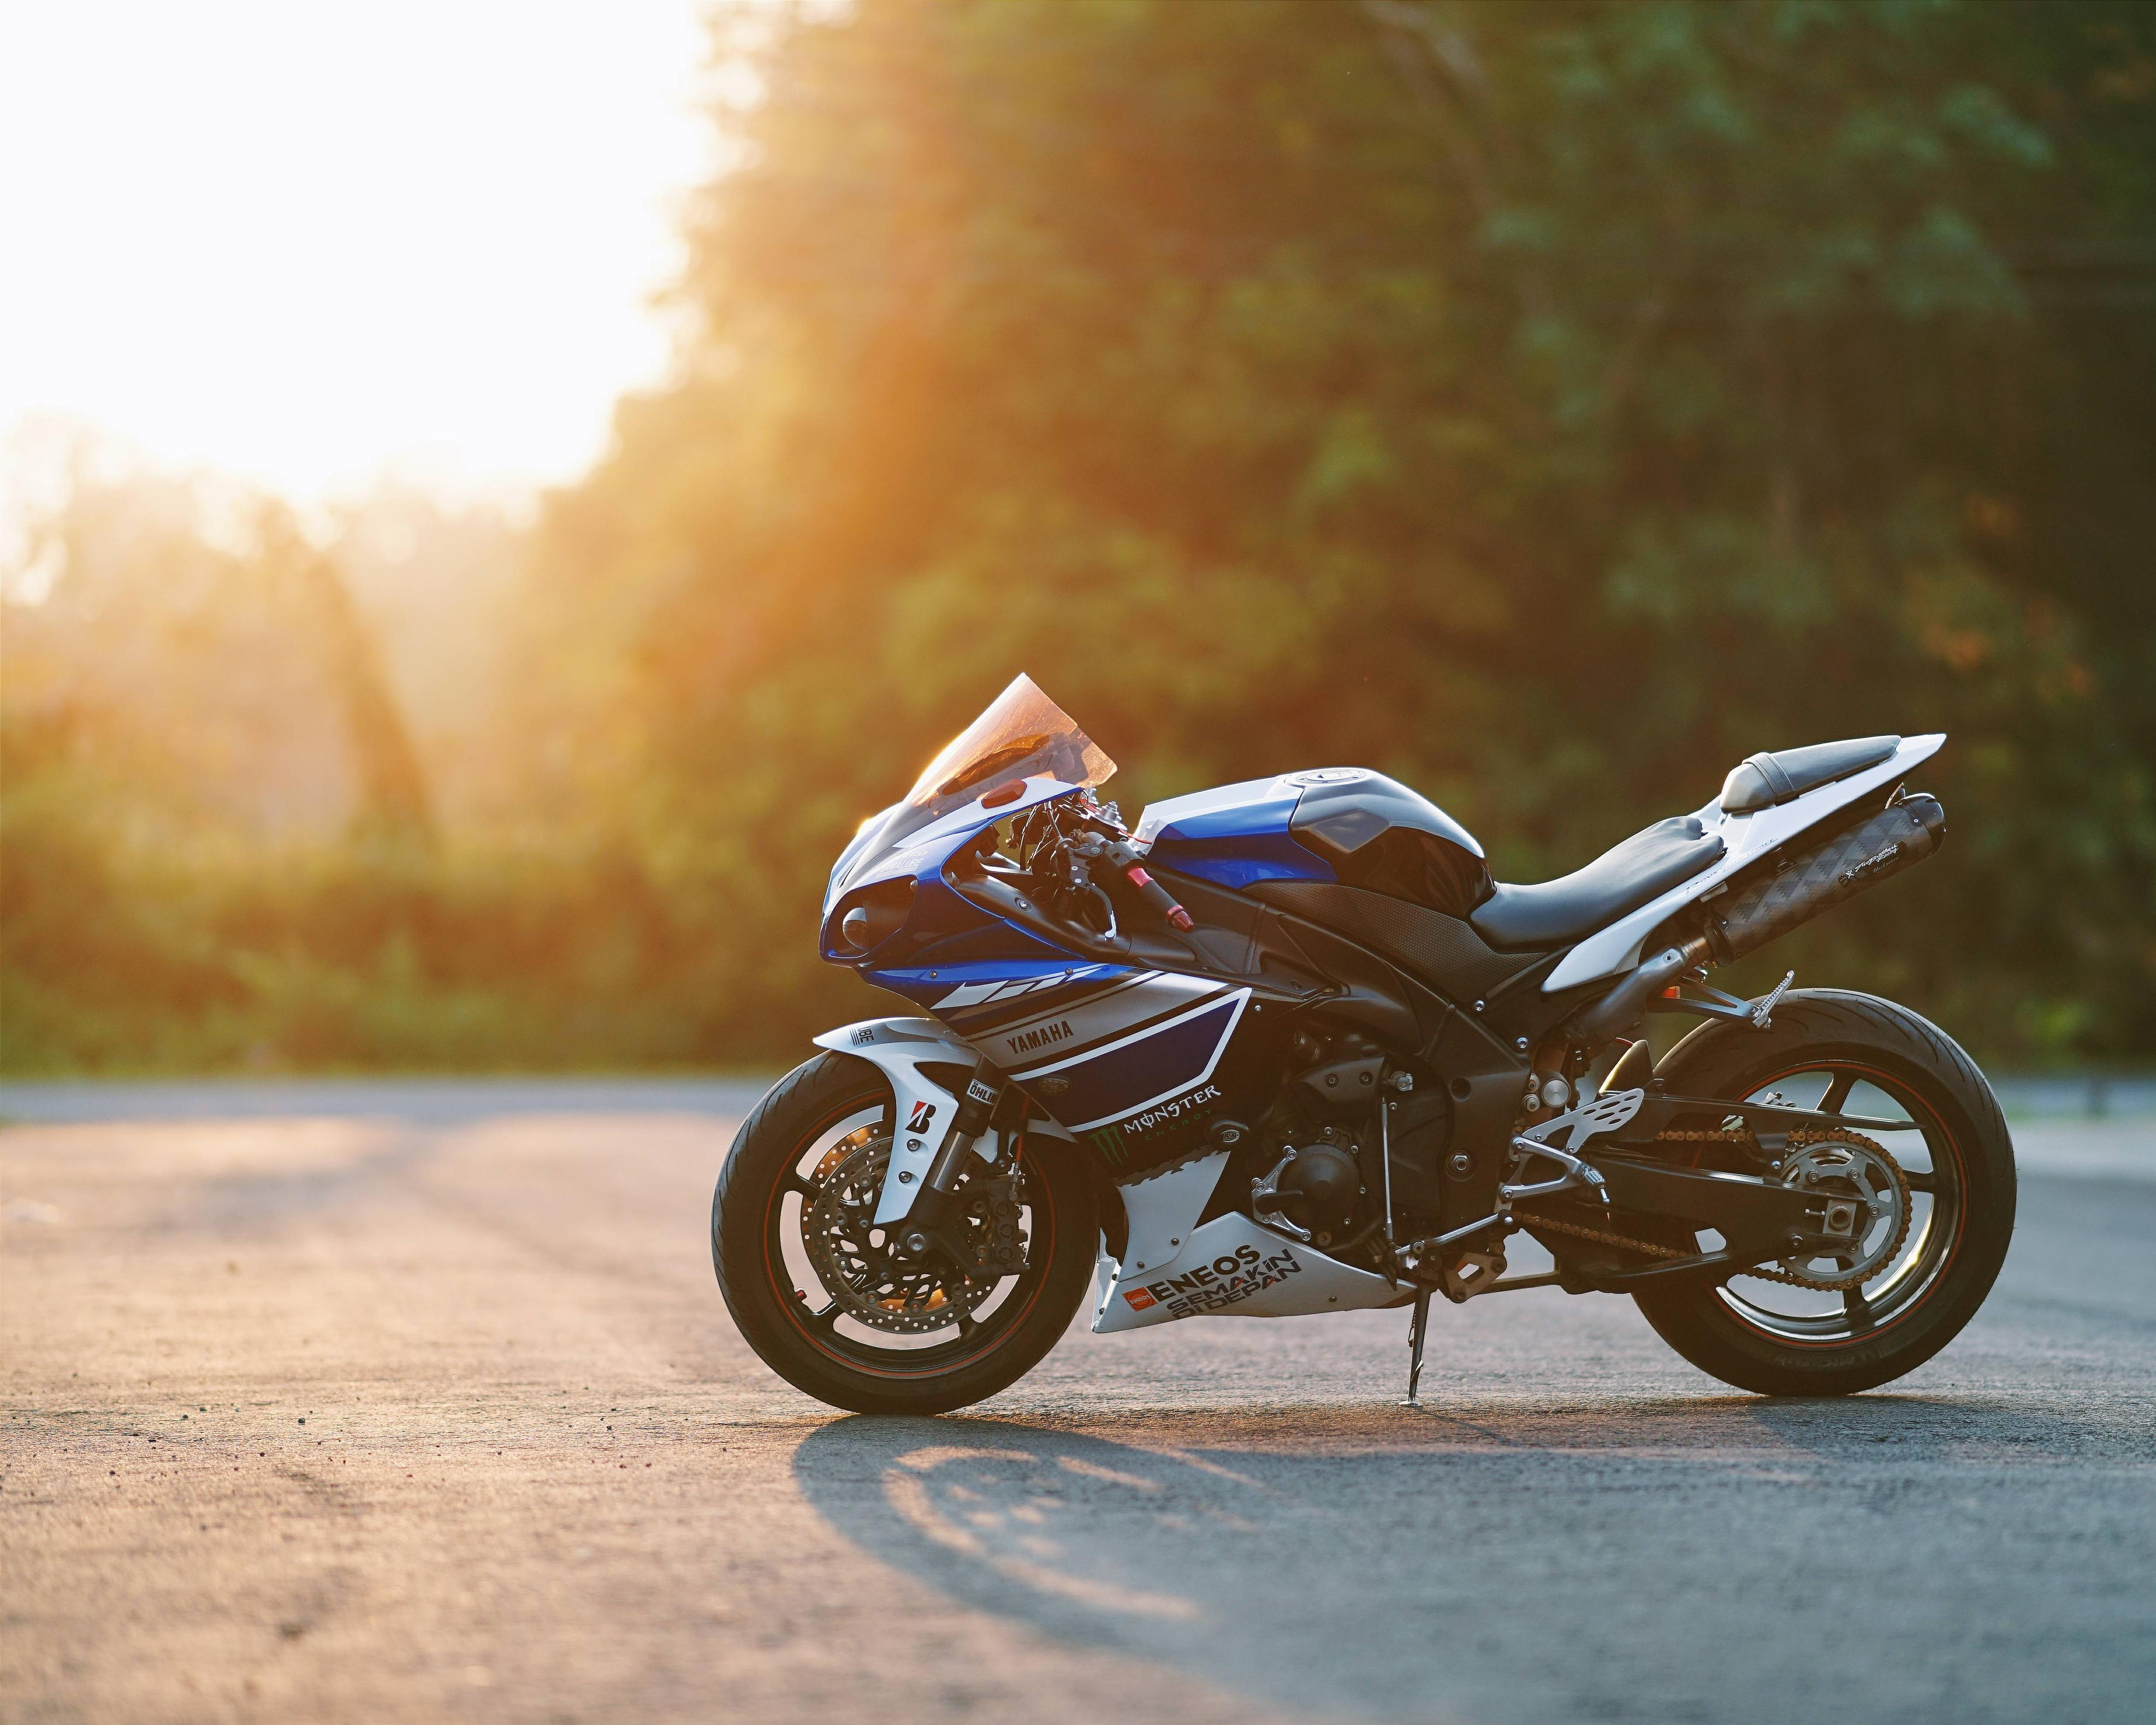 Yamaha YZF-R1M Supersport Motorcycle Wallpapers ...